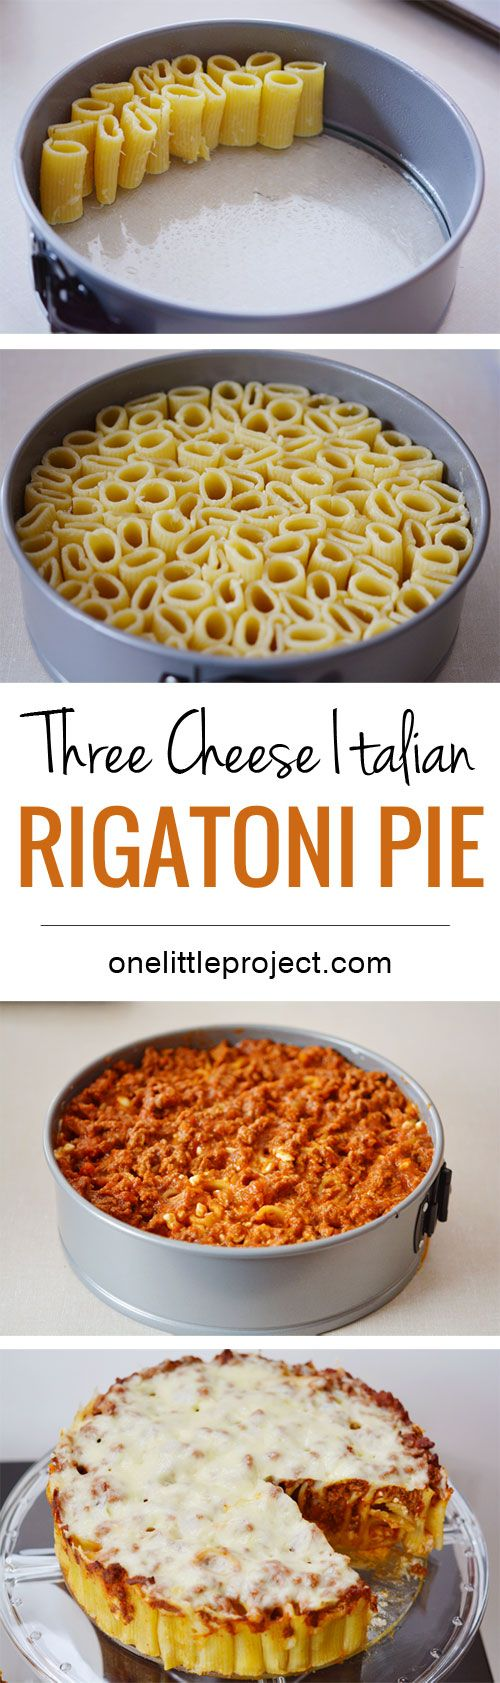 girls Pie Cheese Stand Rigatoni Three Italian Up Recipe Rigatoni    jewelry silver Suddenly and